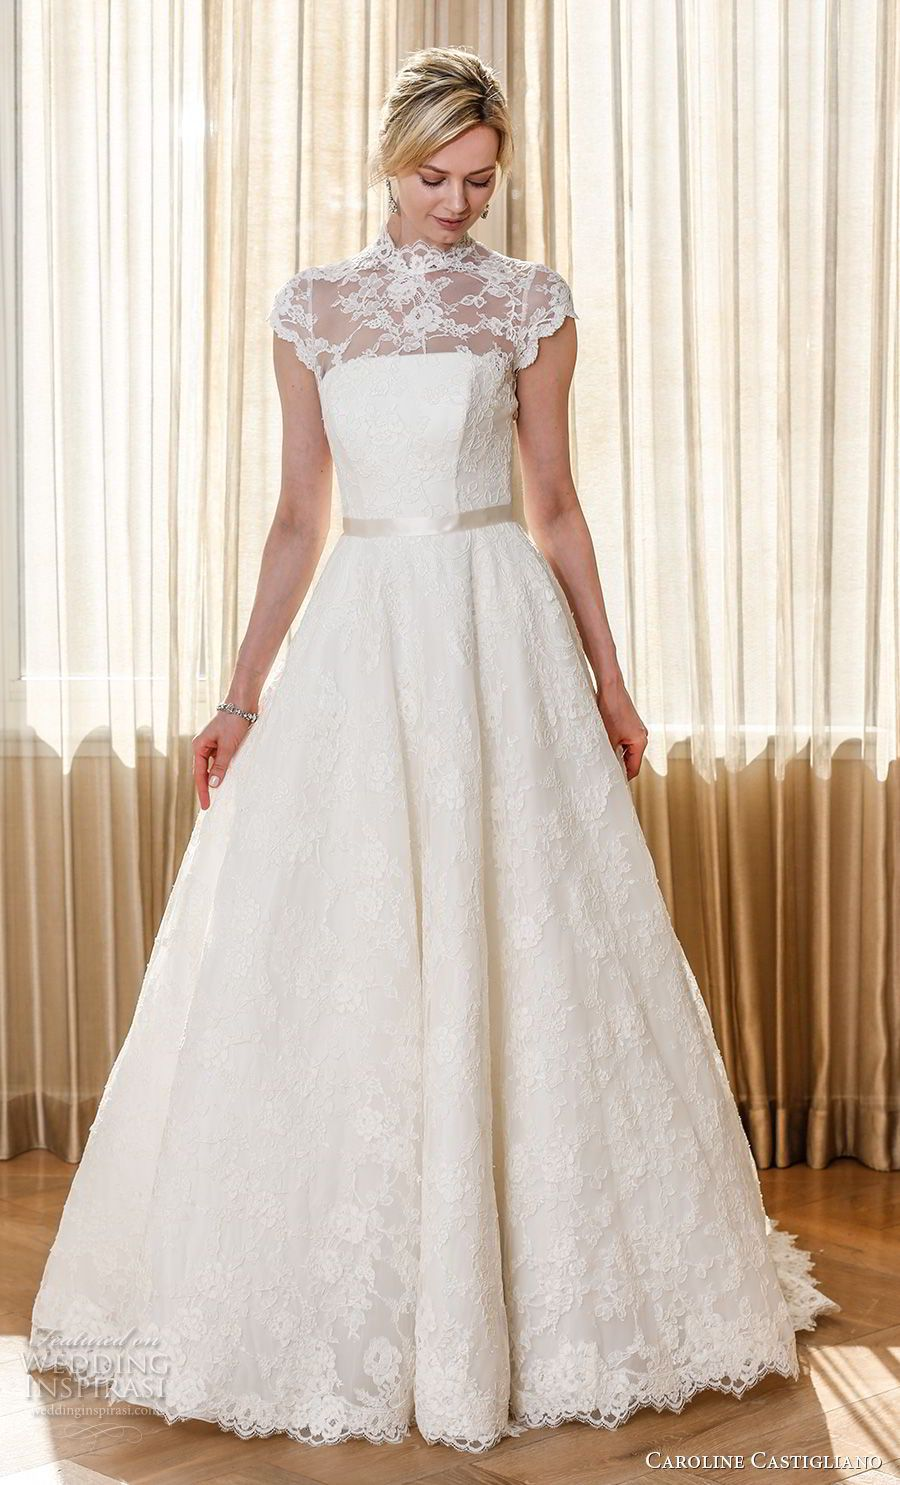 Caroline castigliano wedding dresses beauty u the beast dream